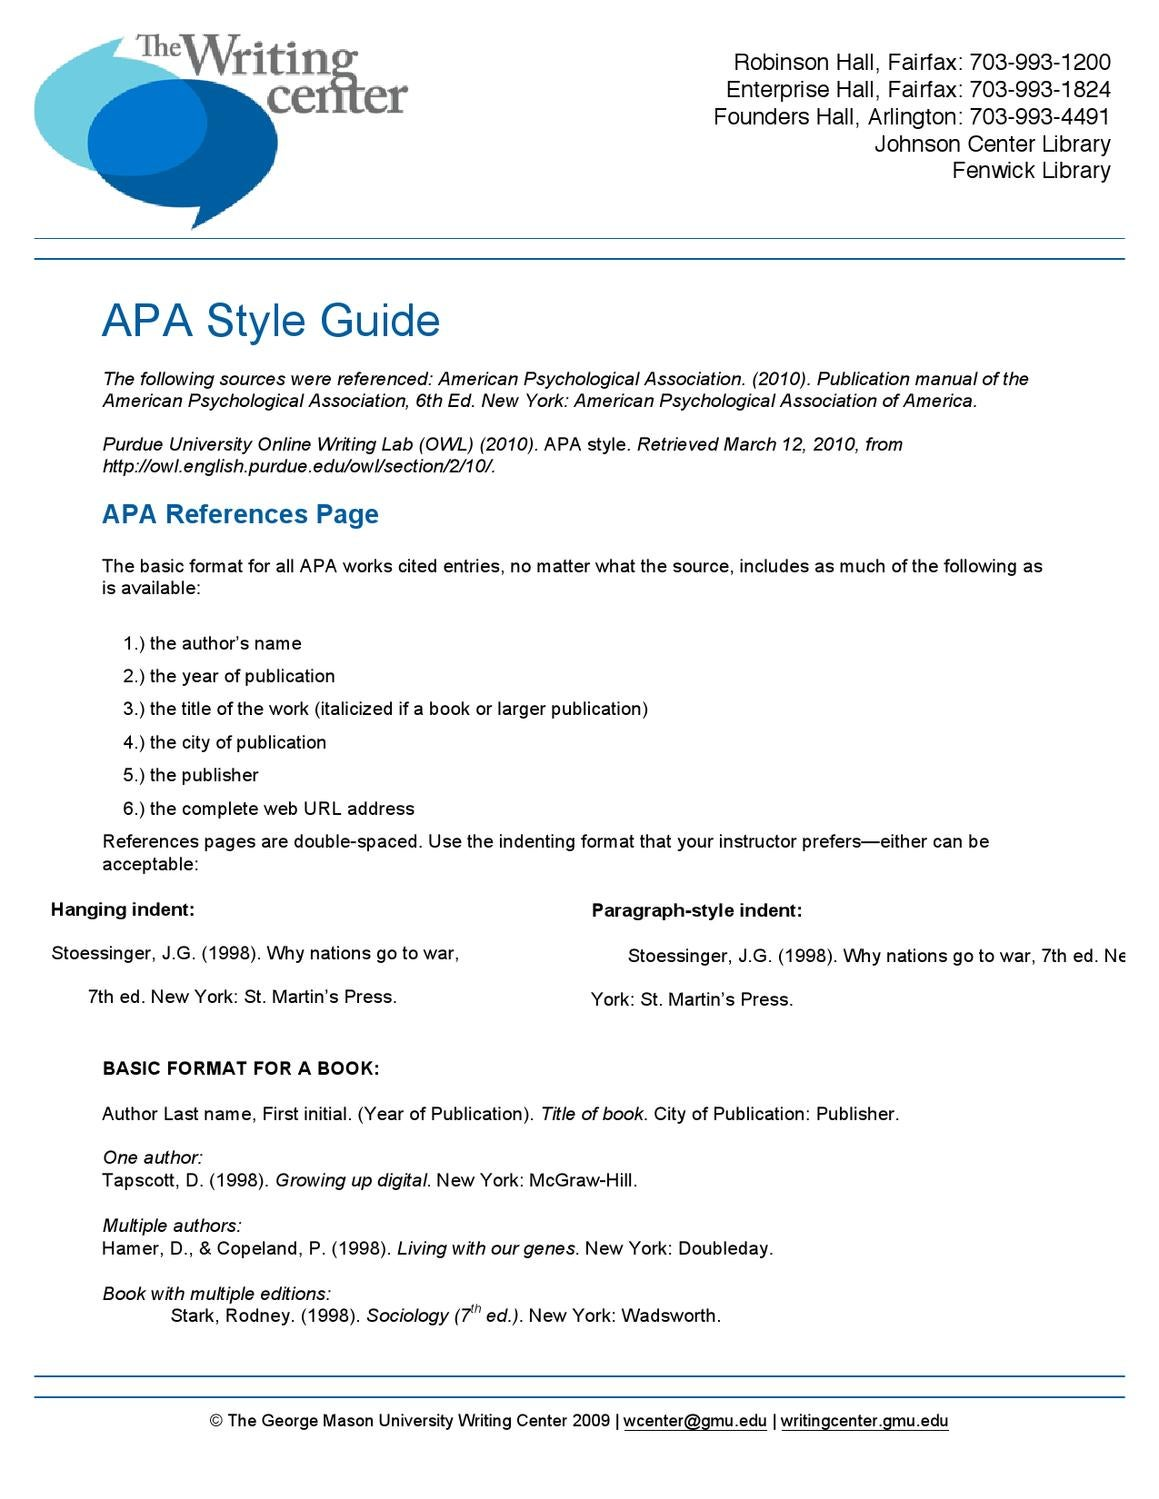 apa citation style by writing center issuu